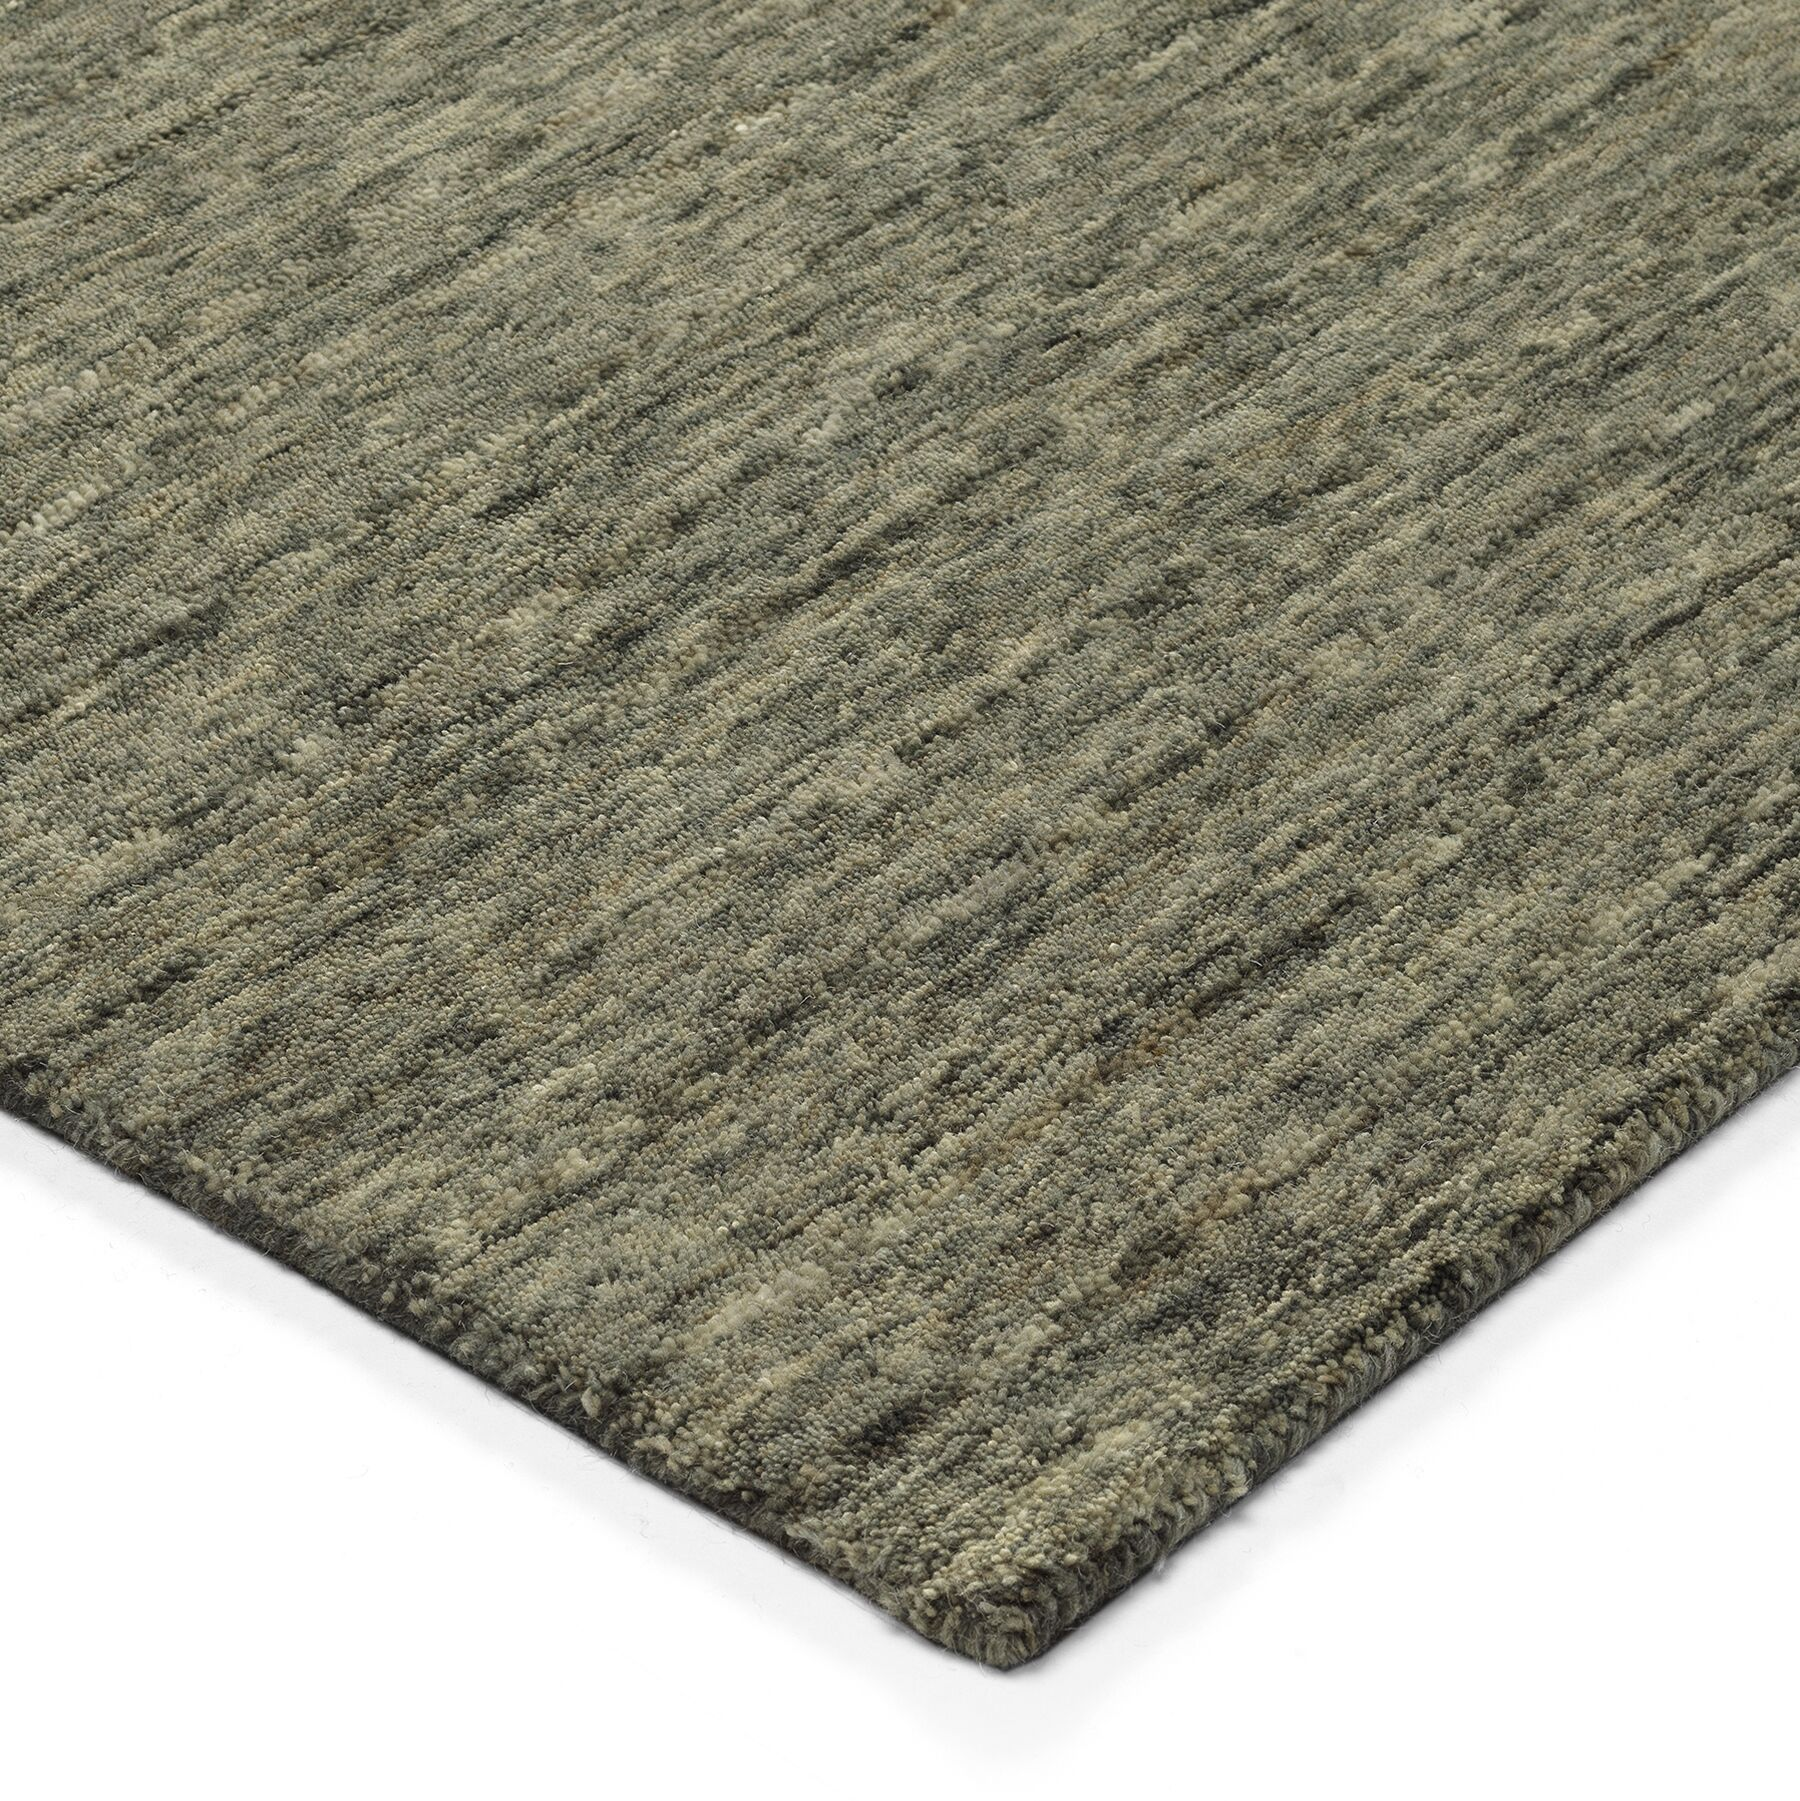 Glenville Hand-Woven Wool Carbon Area Rug Rug Size: Rectangle 5' x 7'6